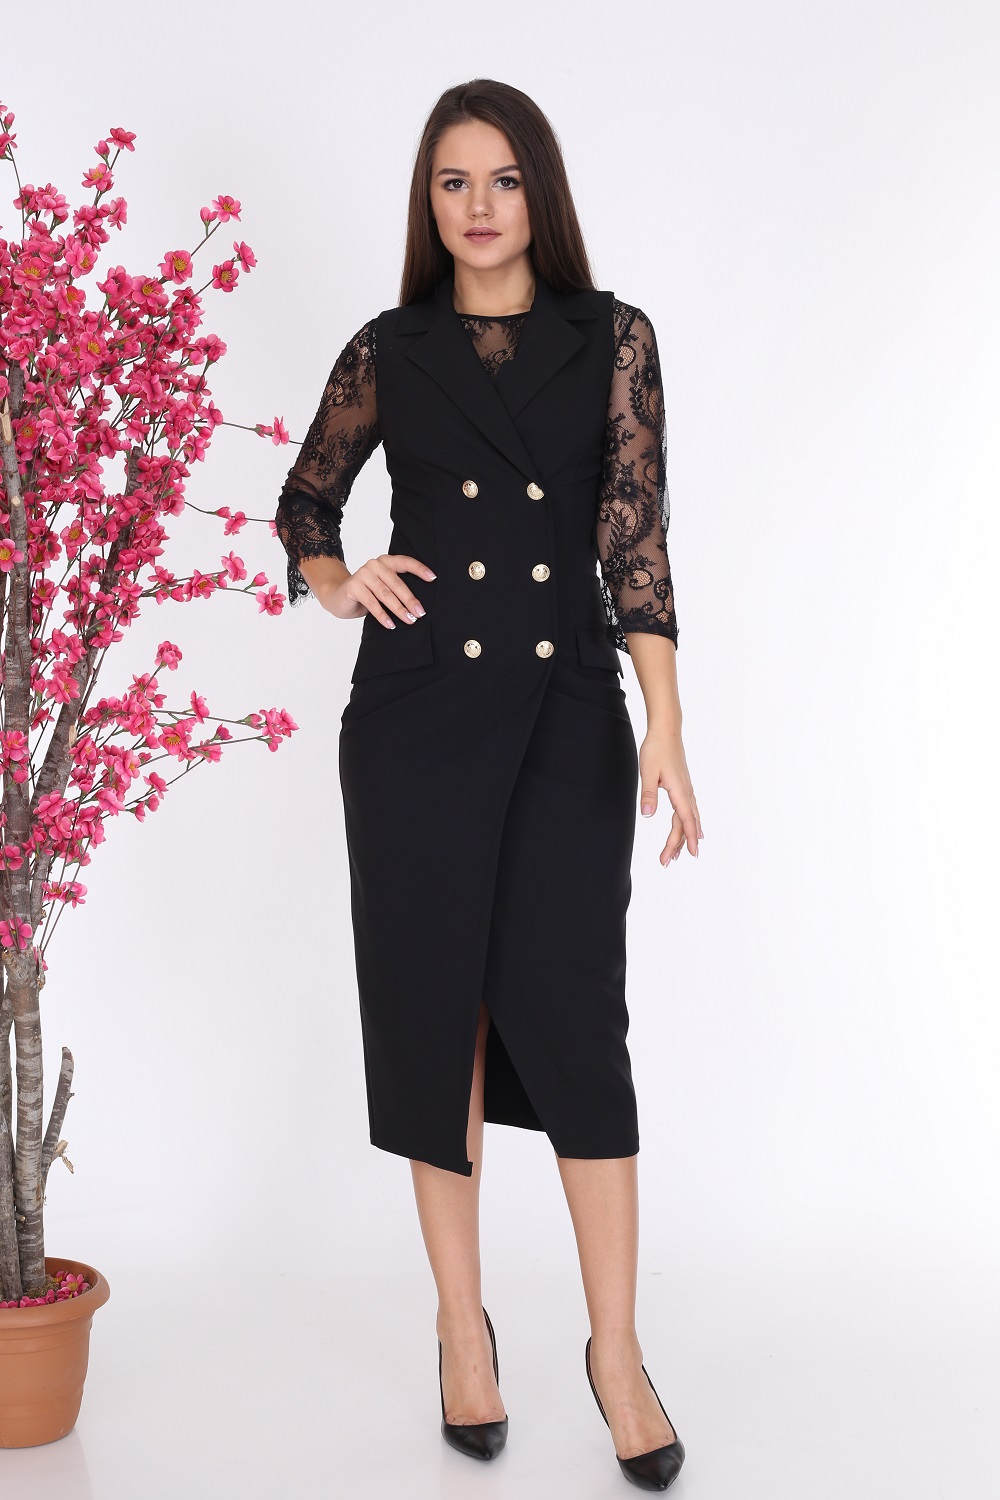 Collared Buttoned Black Dress